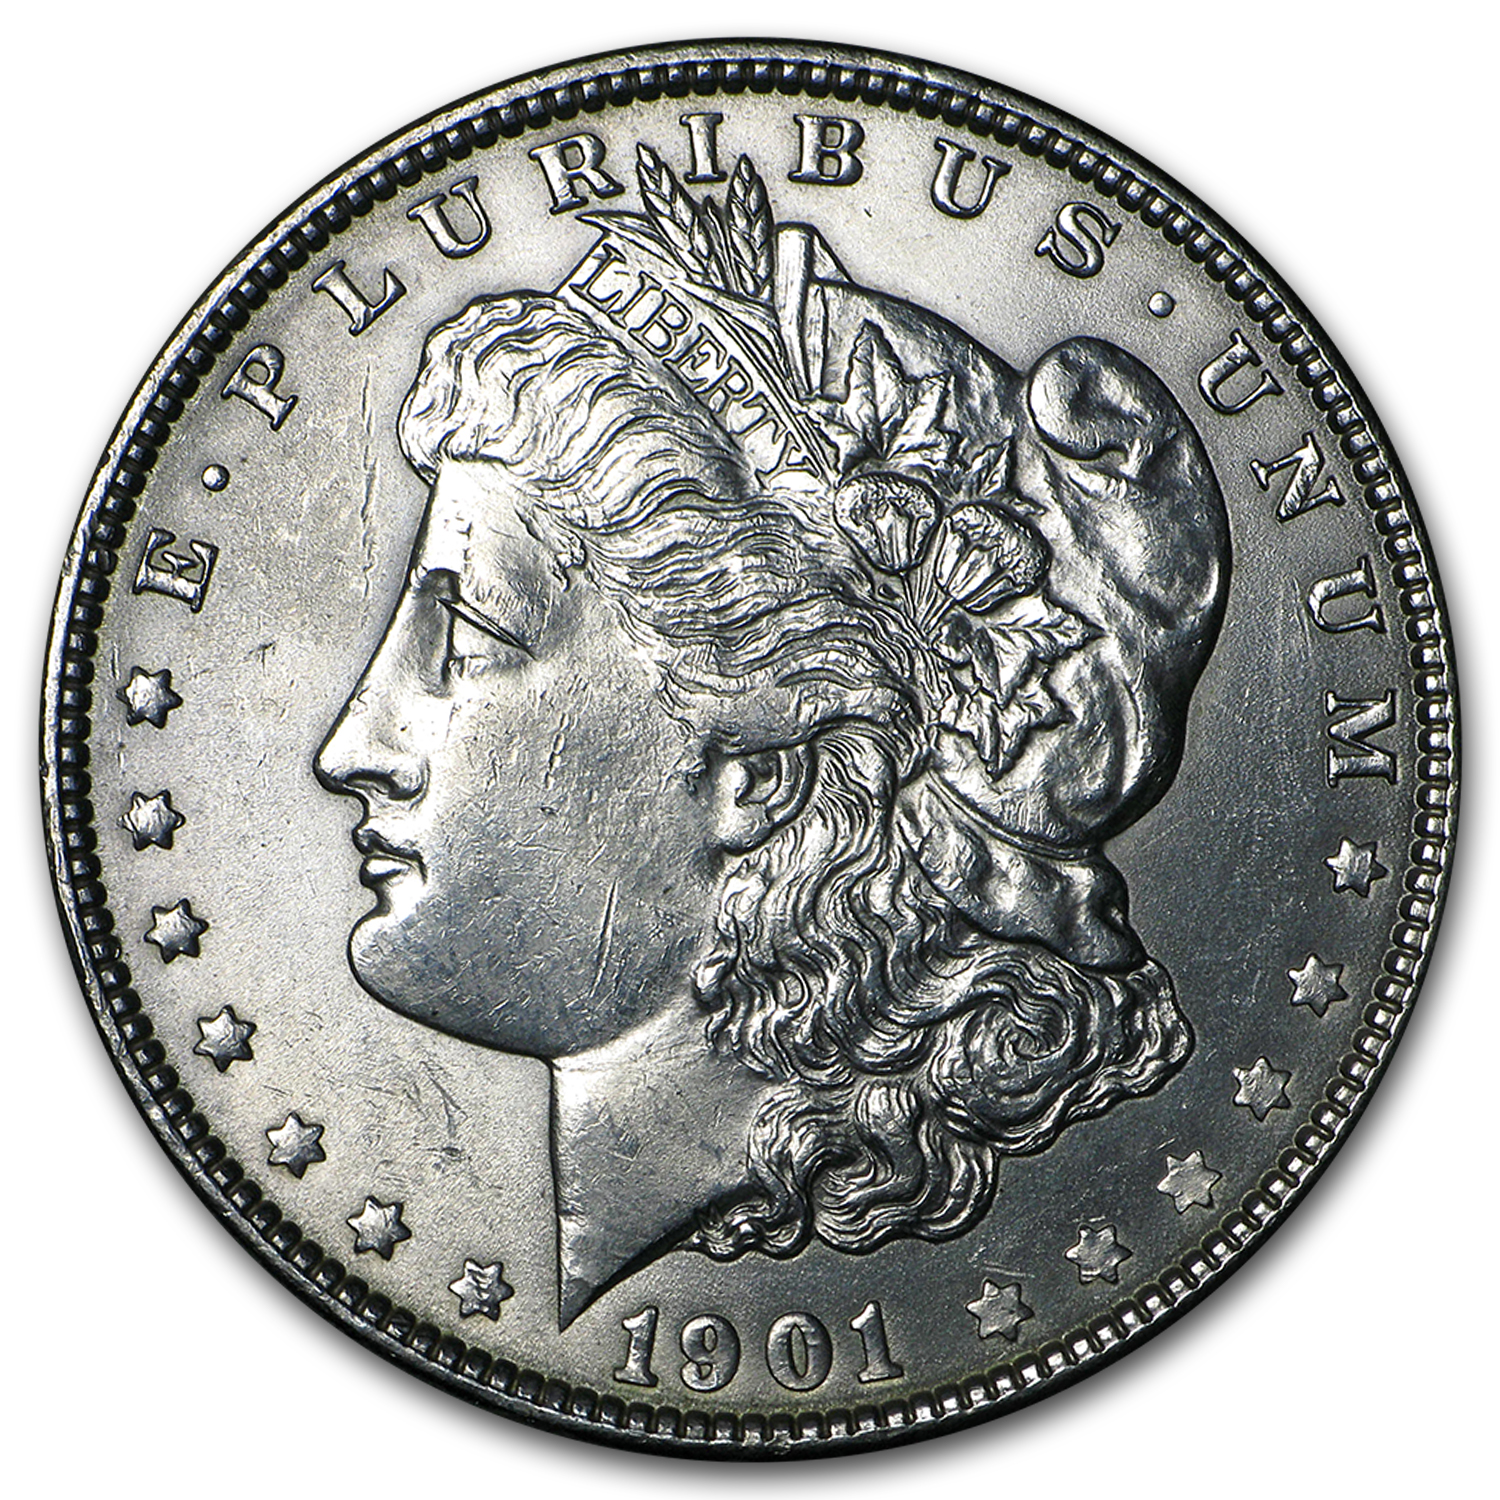 1901 Morgan Dollar - Almost Uncirculated-58